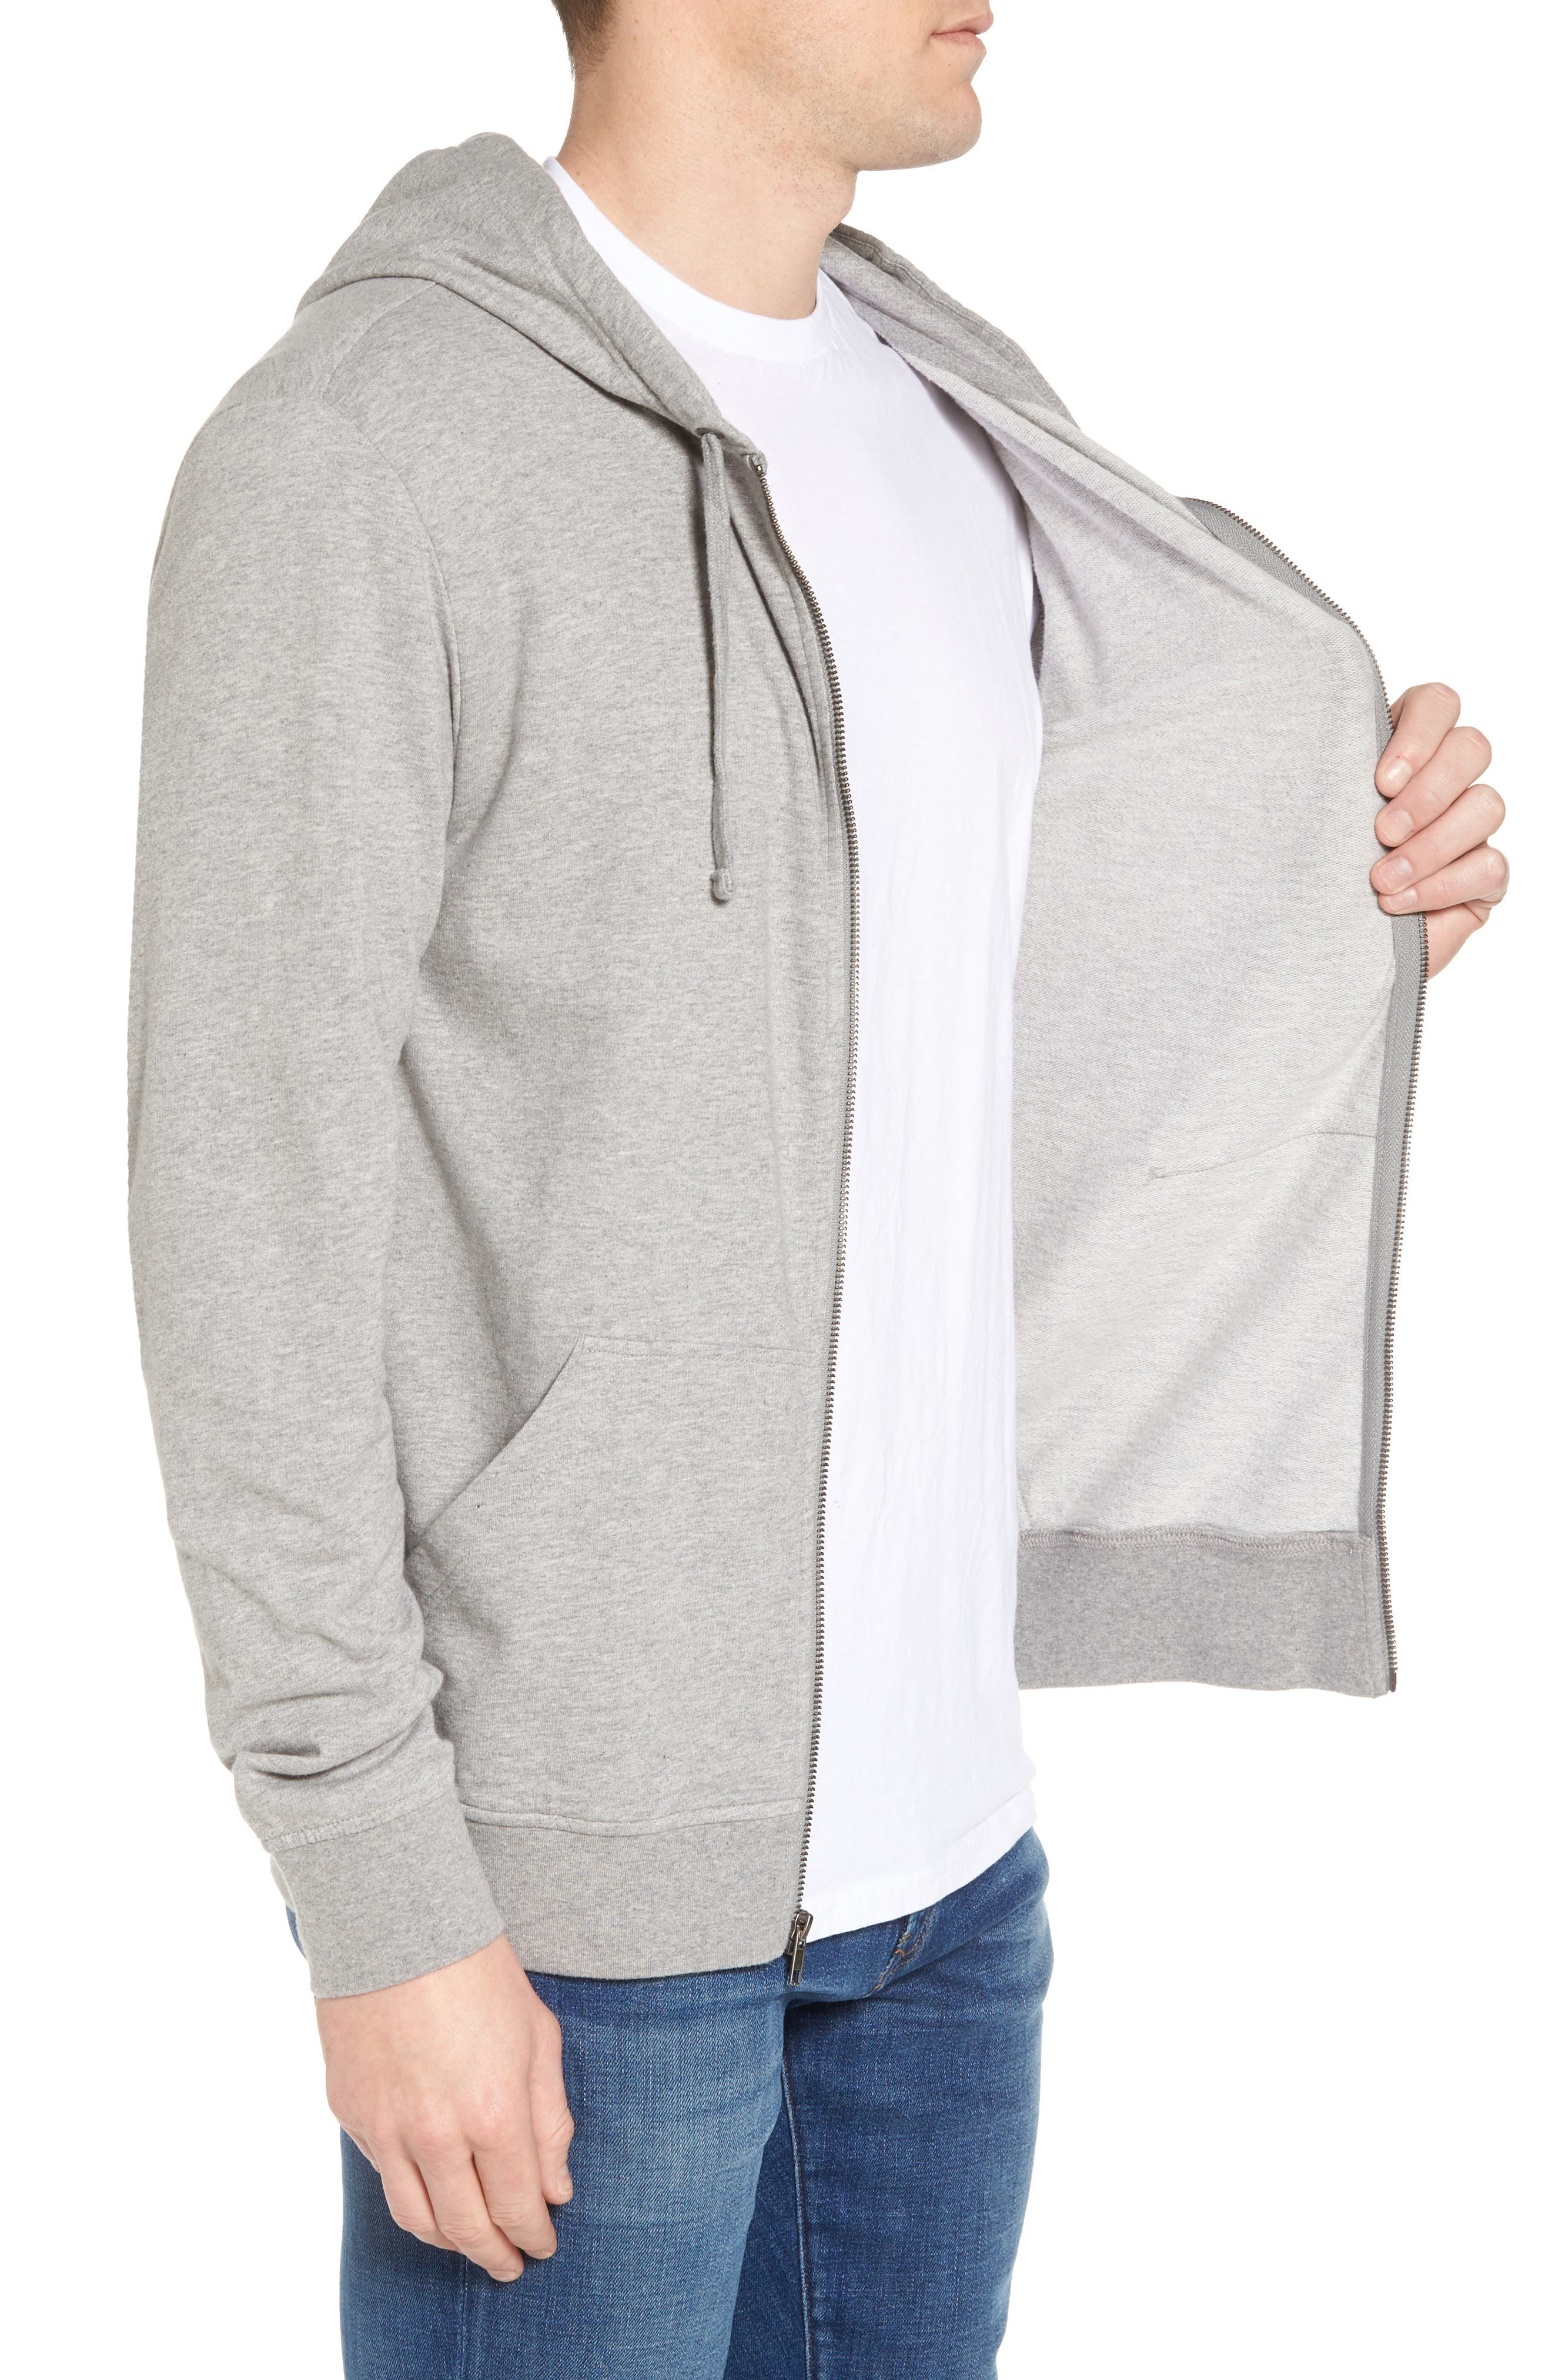 Fitz Roy Frostbite PolyCycle<sup>®</sup> Full Zip Hoodie,                             Alternate thumbnail 3, color,                             FEATHER GREY